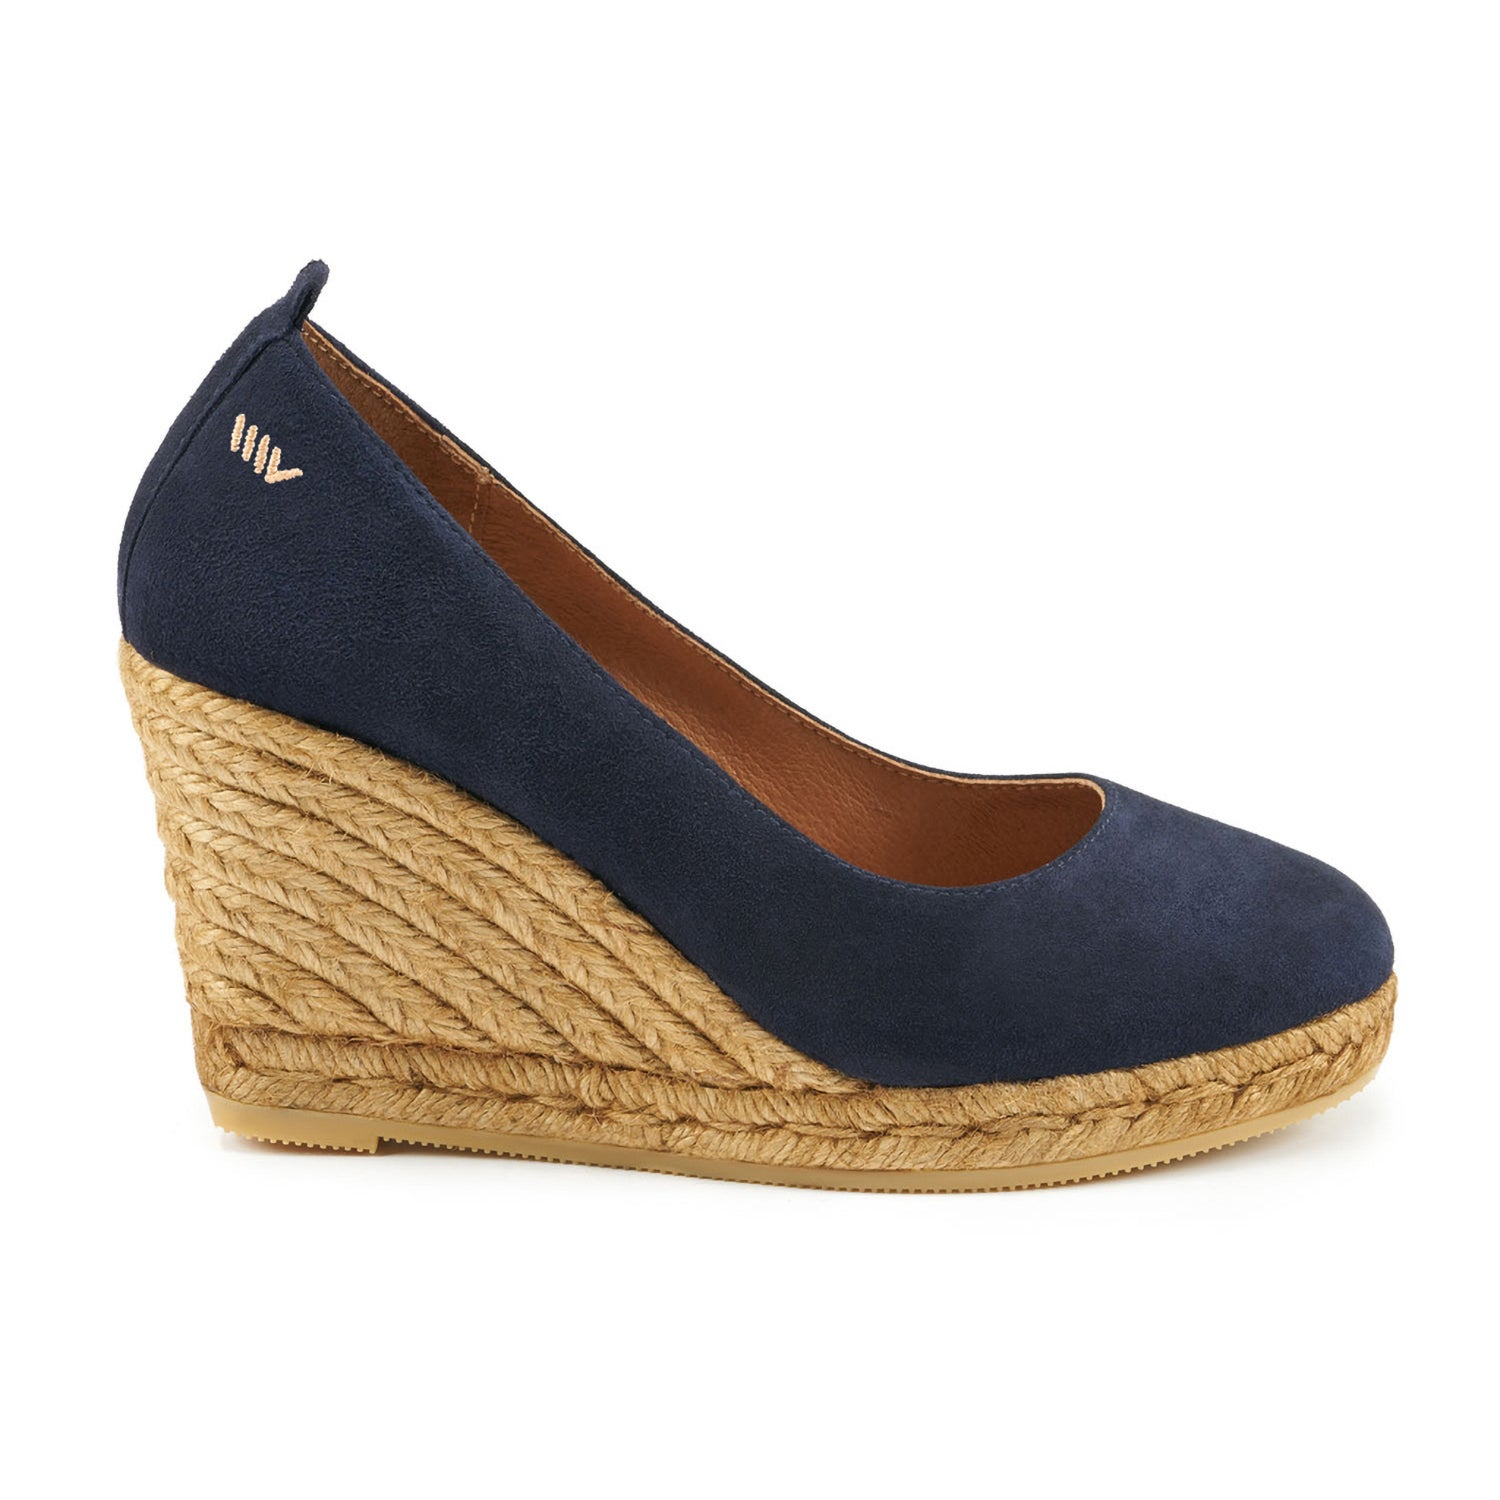 a5bff11bd9d Marquesa Suede Wedge Pumps - Navy